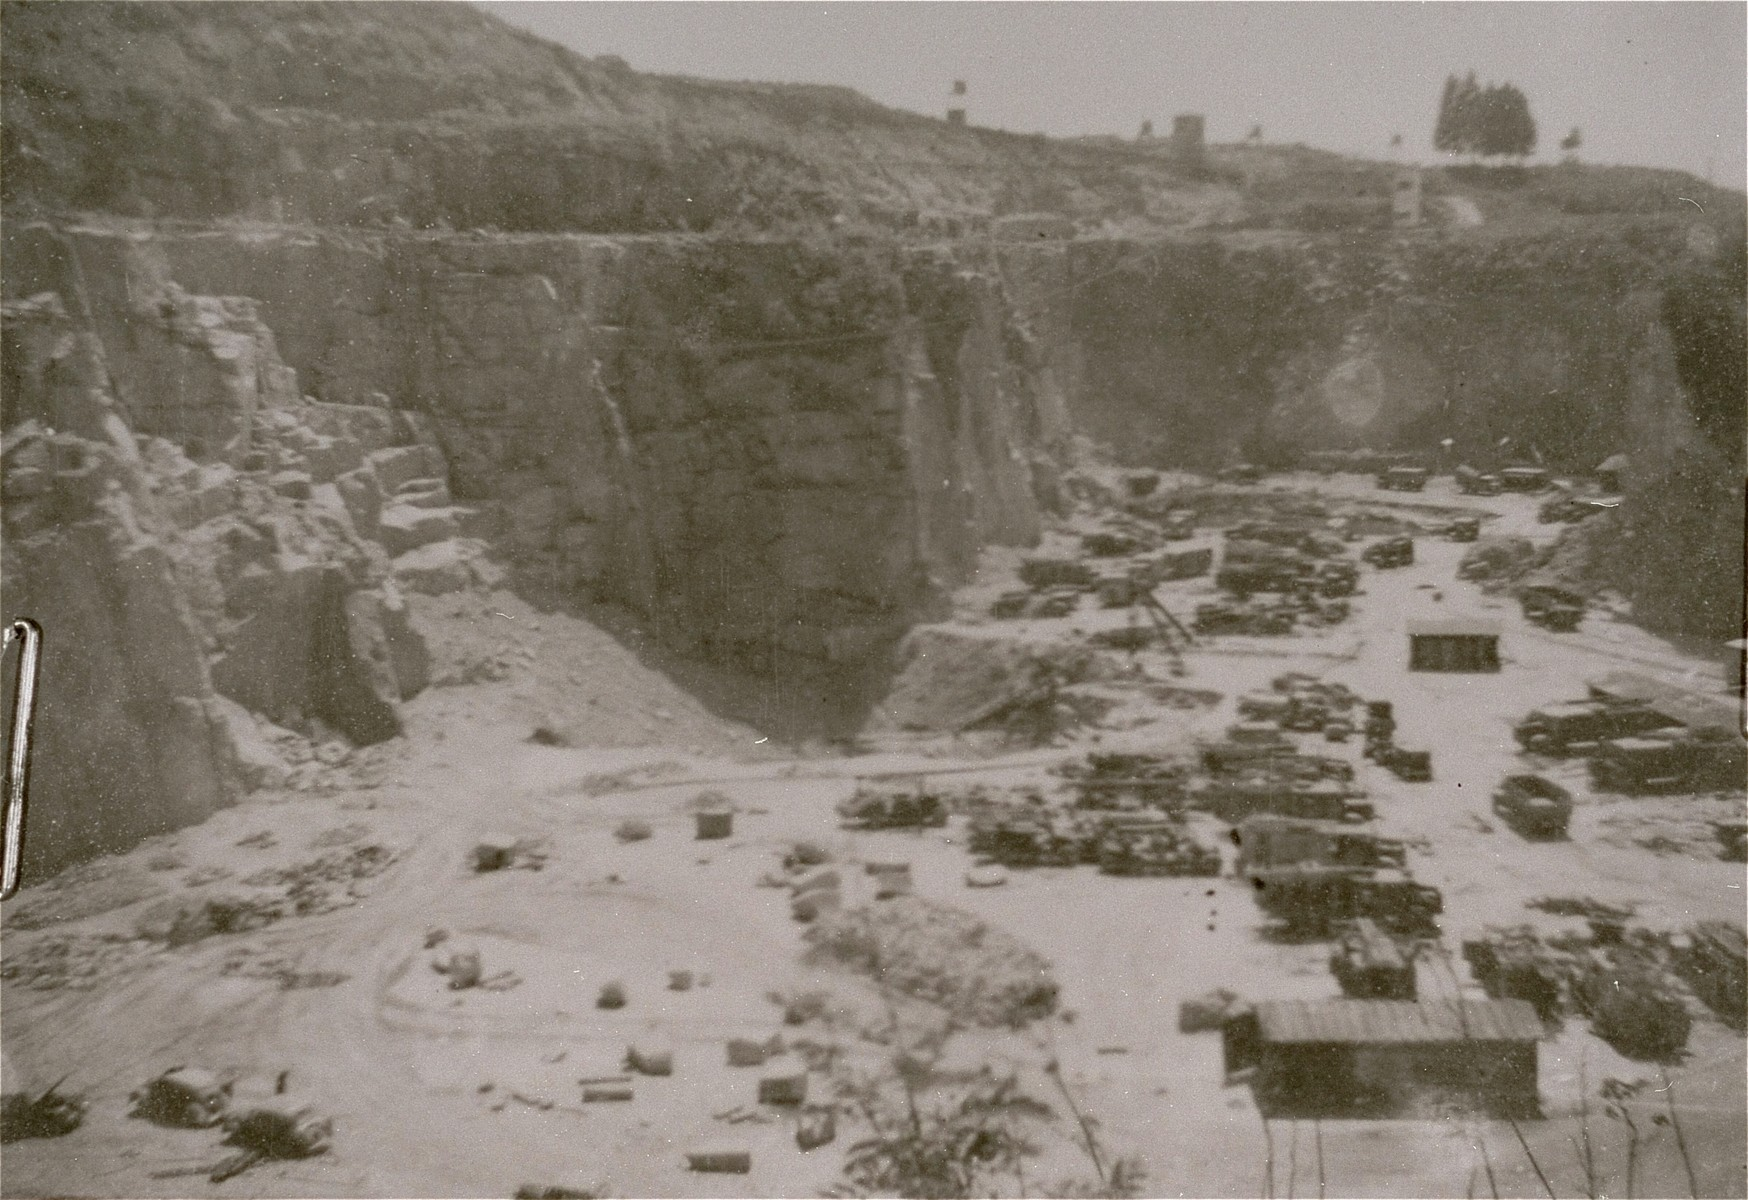 View of the Wiener Graben quarry at the Mauthausen concentration camp.